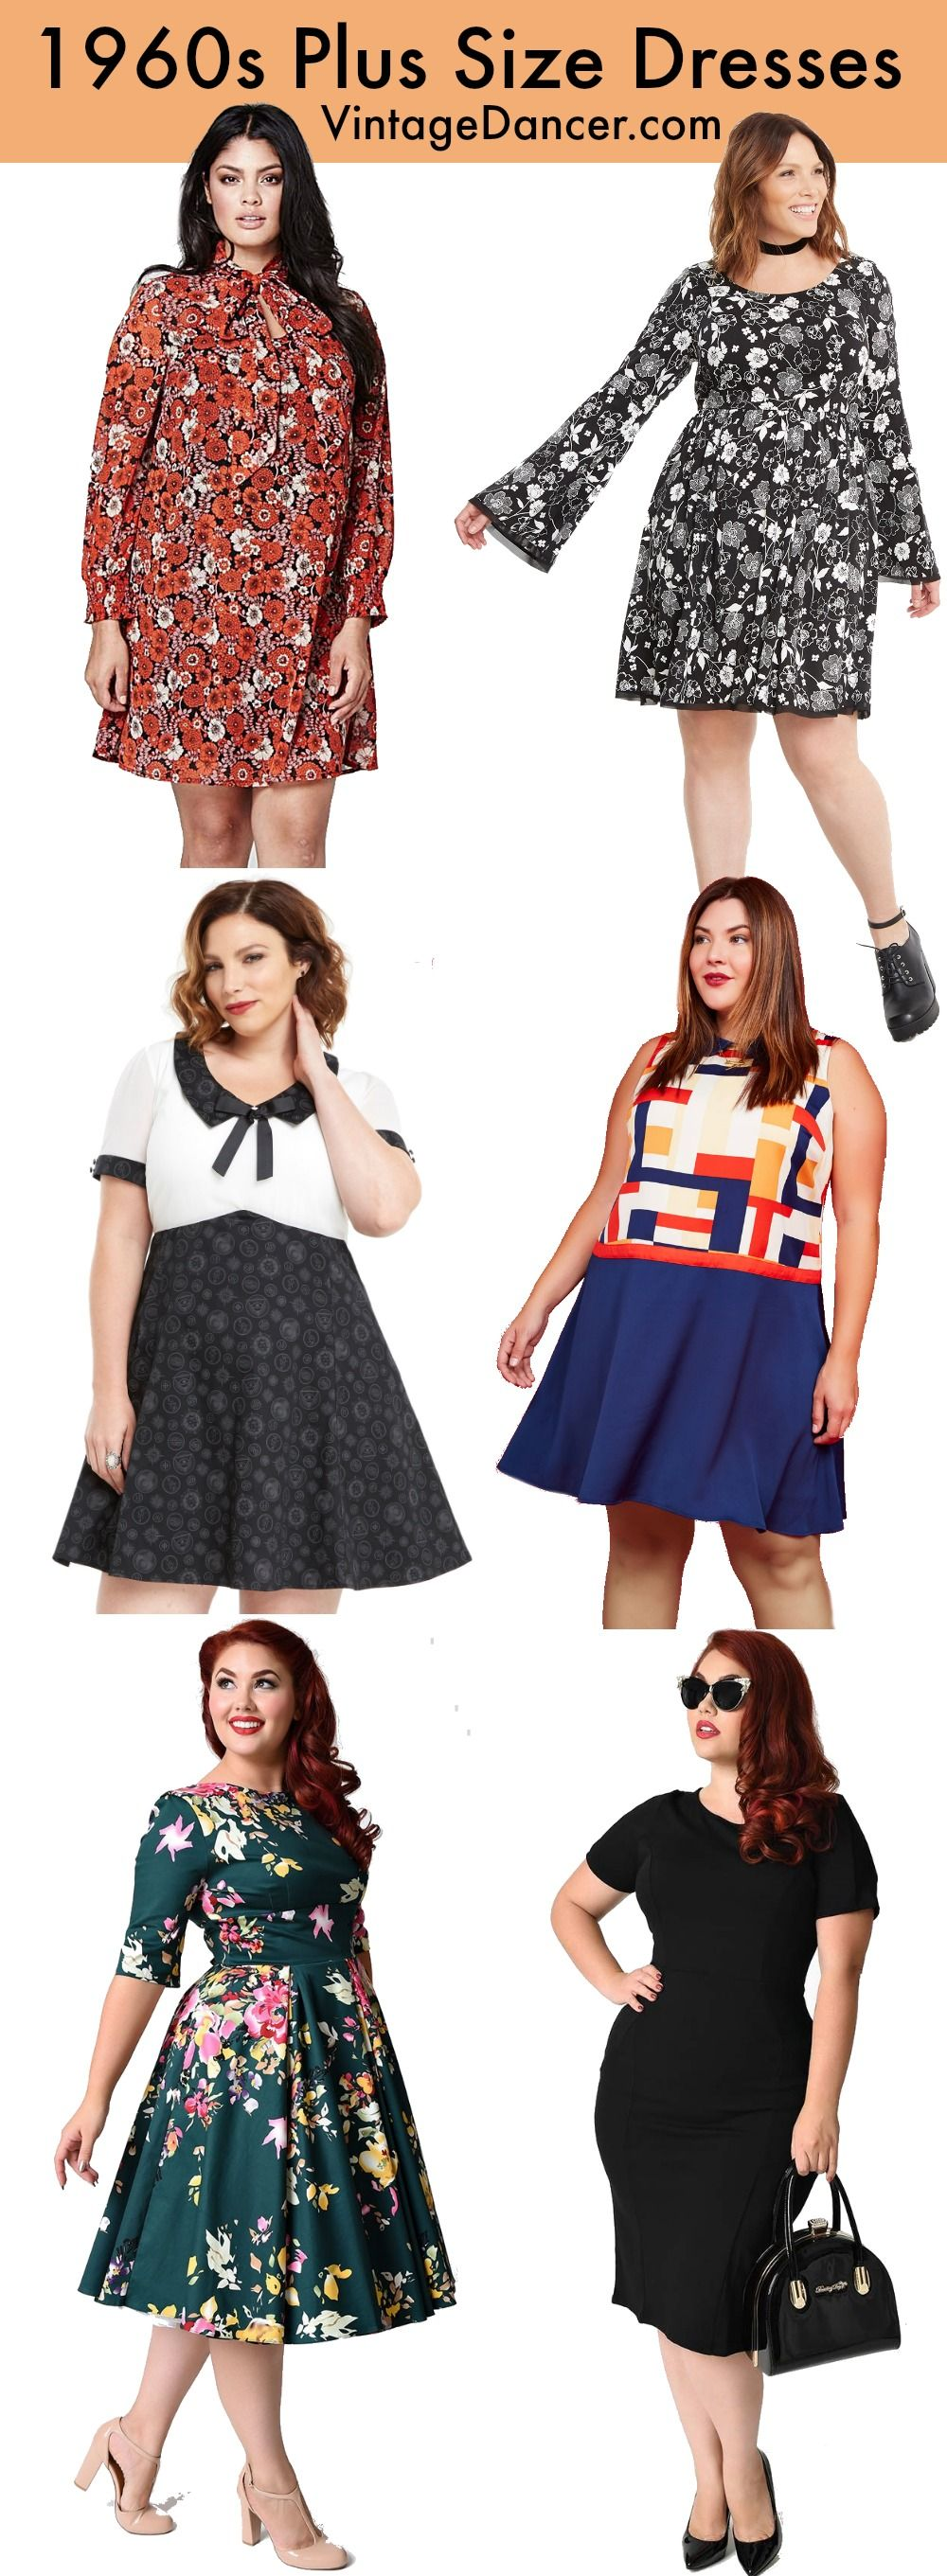 60s Plus Size Retro Dresses, Clothing, Costumes | 1960s ...